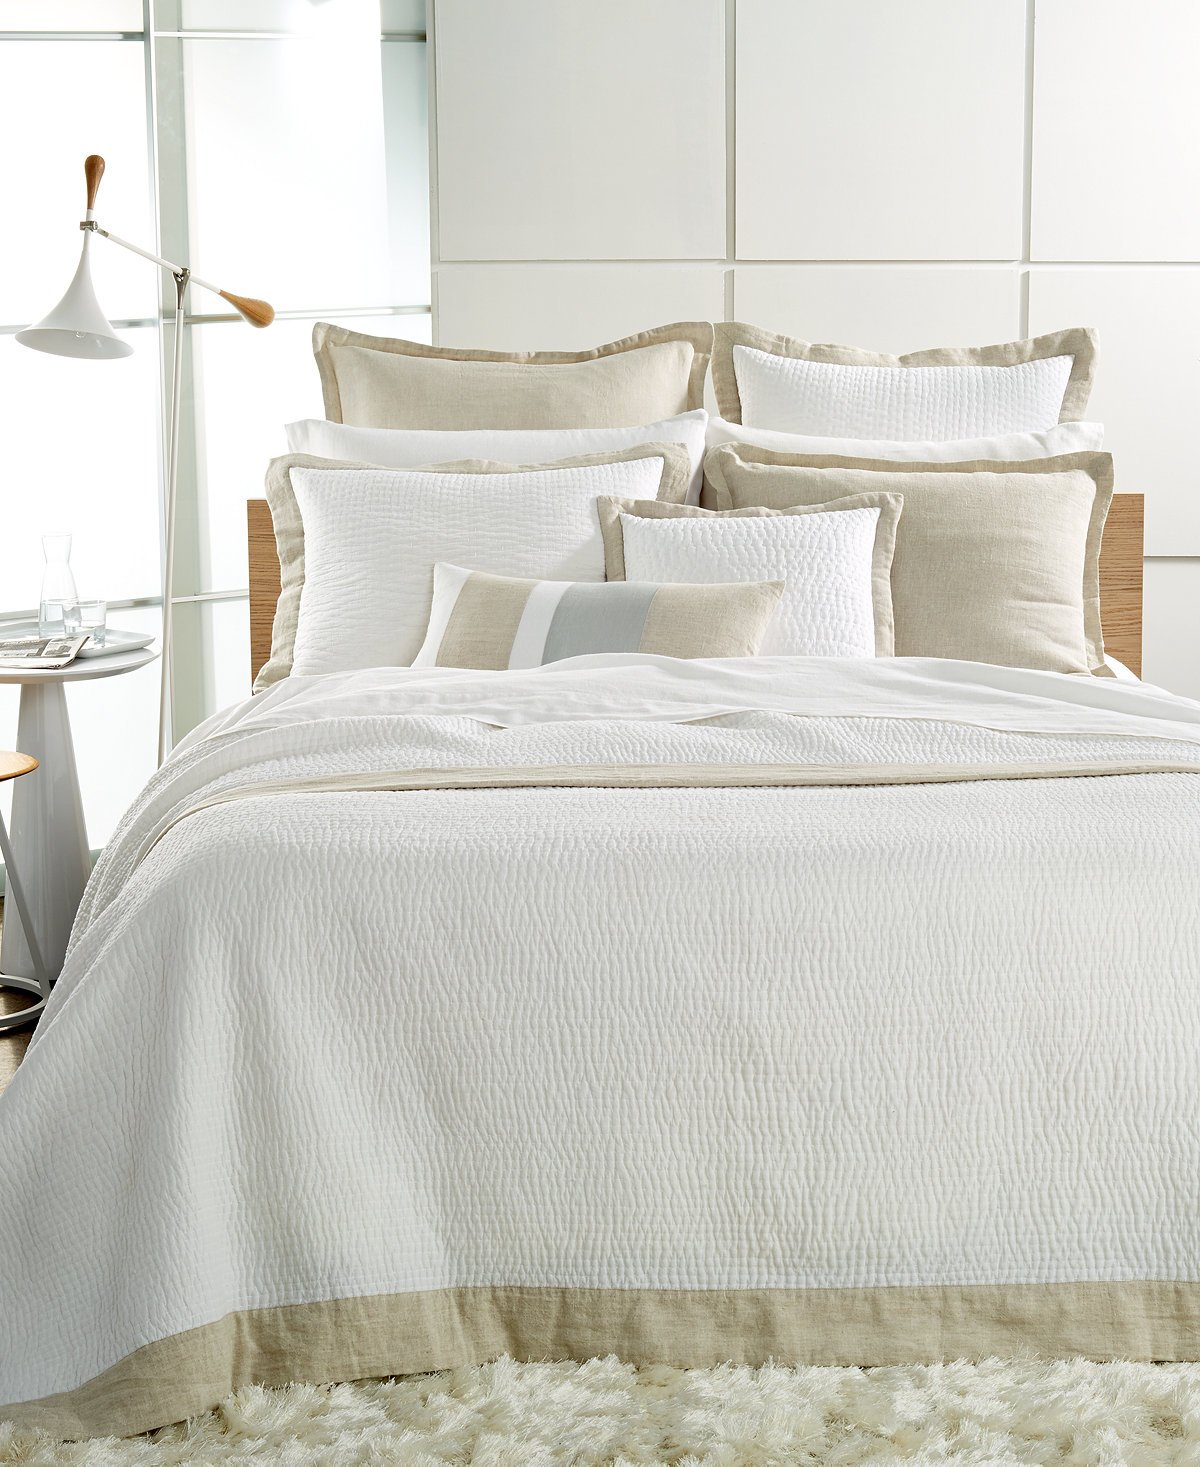 Hotel Collection Voile Linen Natural White Quilted Full Queen Coverlet